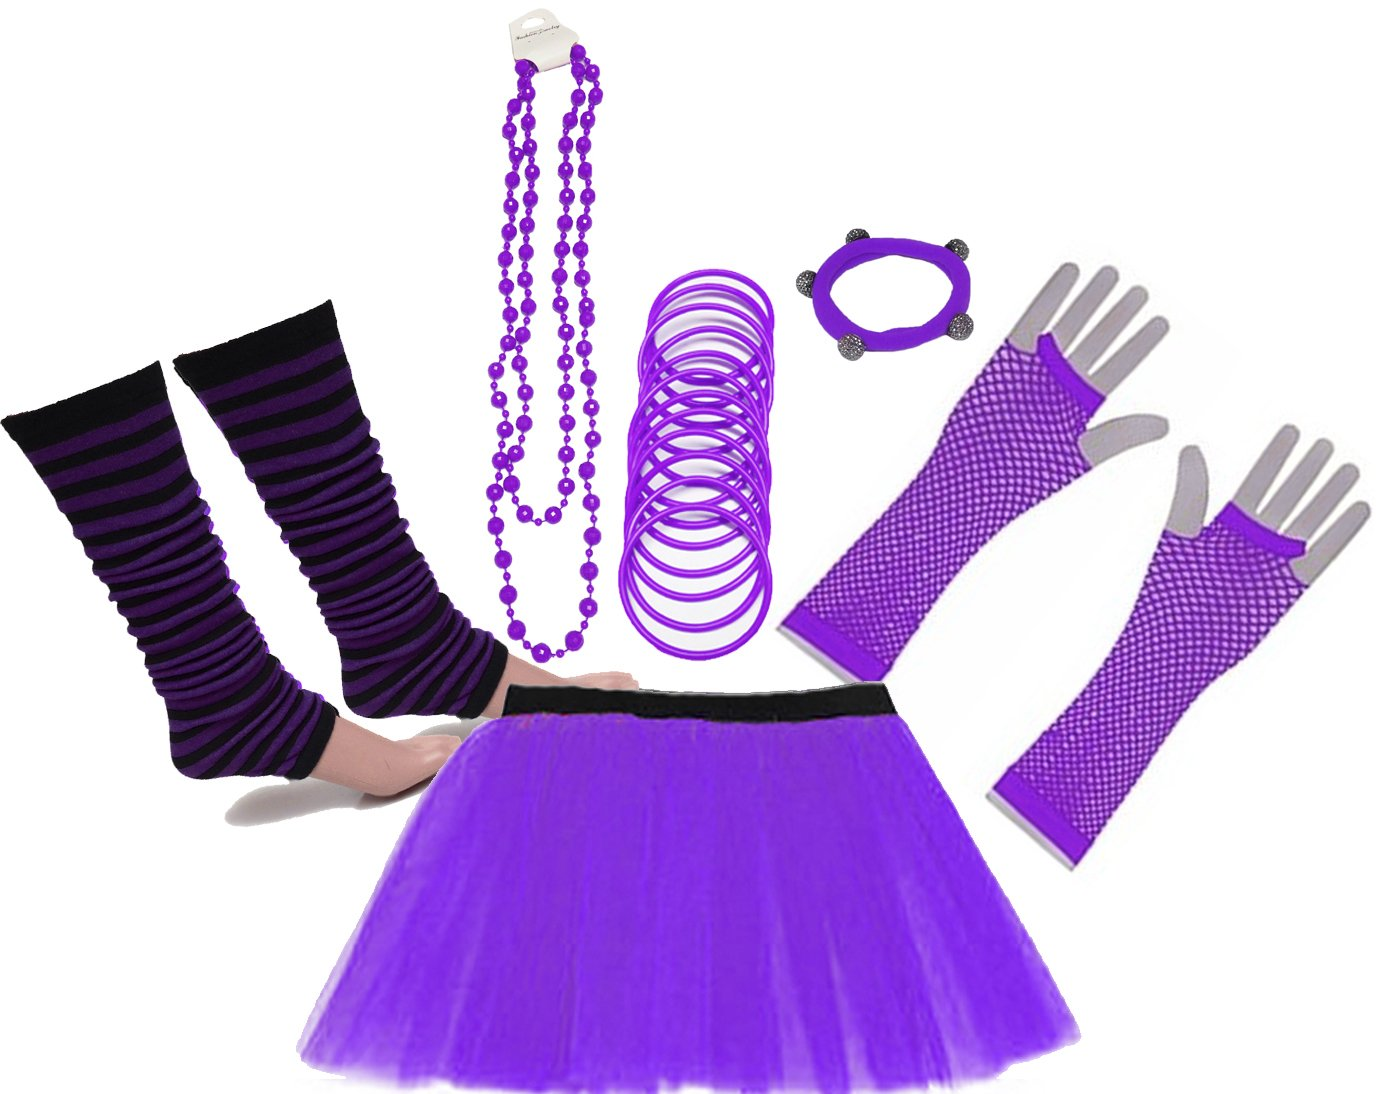 Neon Tutu Skirt Legwarmer Gummies Beads Hen Fancy Dress Party Costumes Set - 10 Colours - Sizes 8 to 22